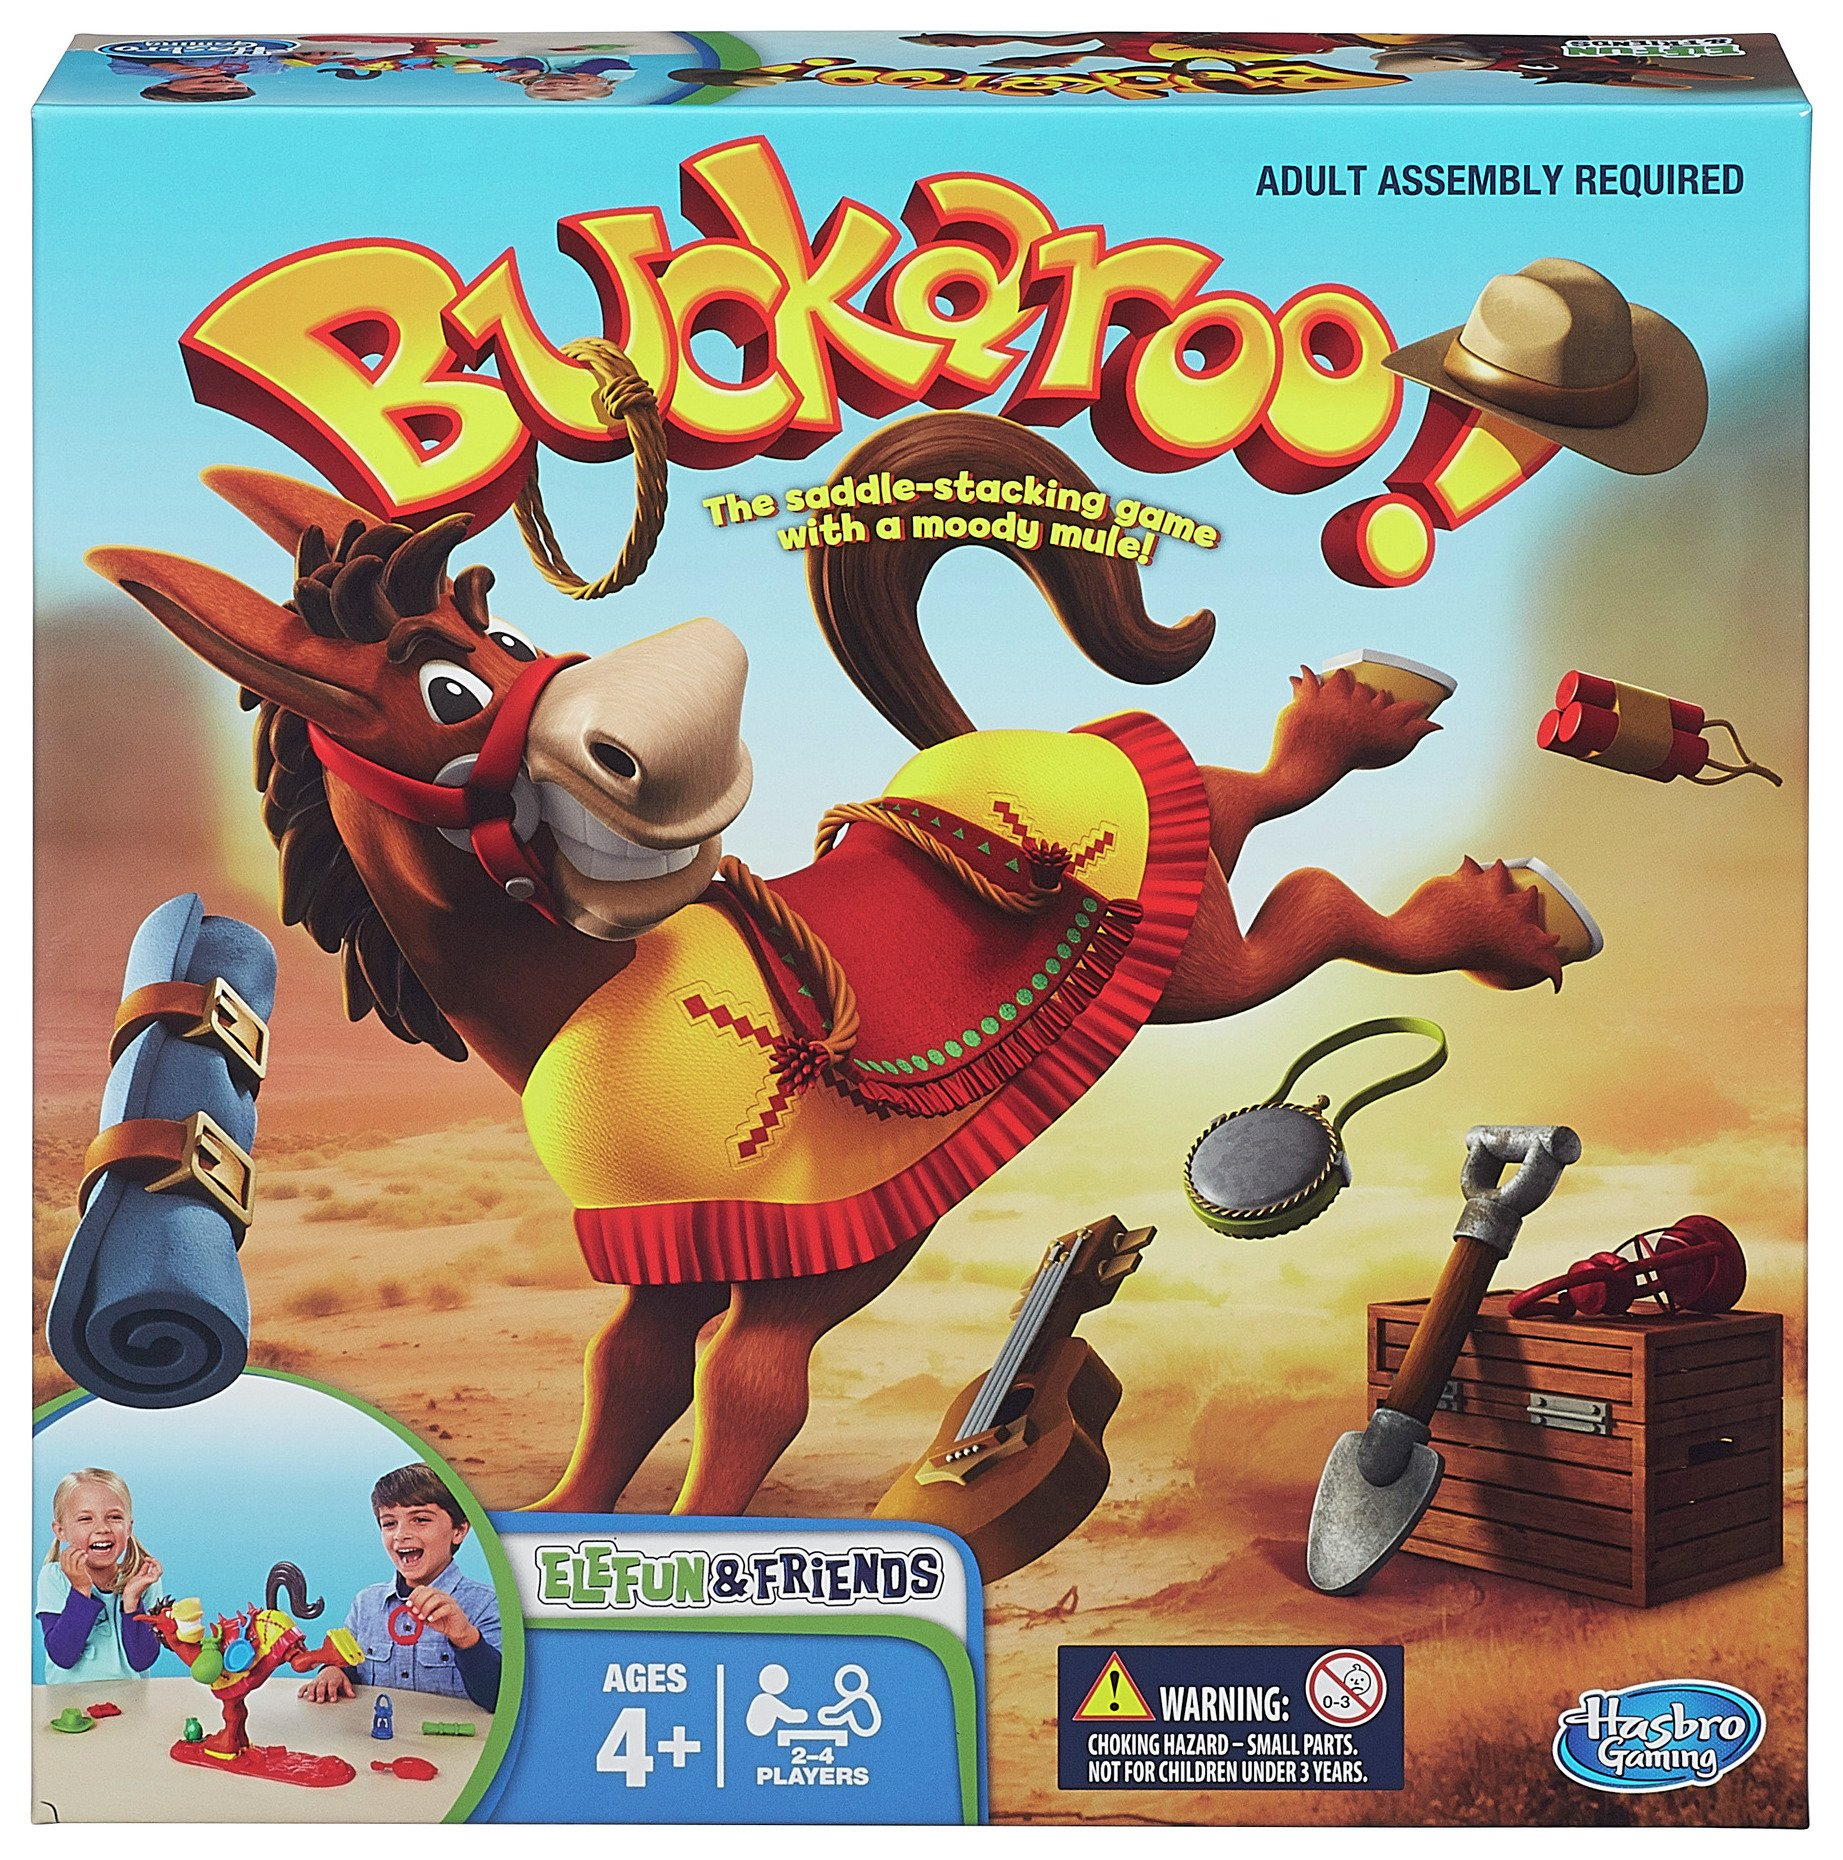 Image of Buckaroo Game from Hasbro Gaming.